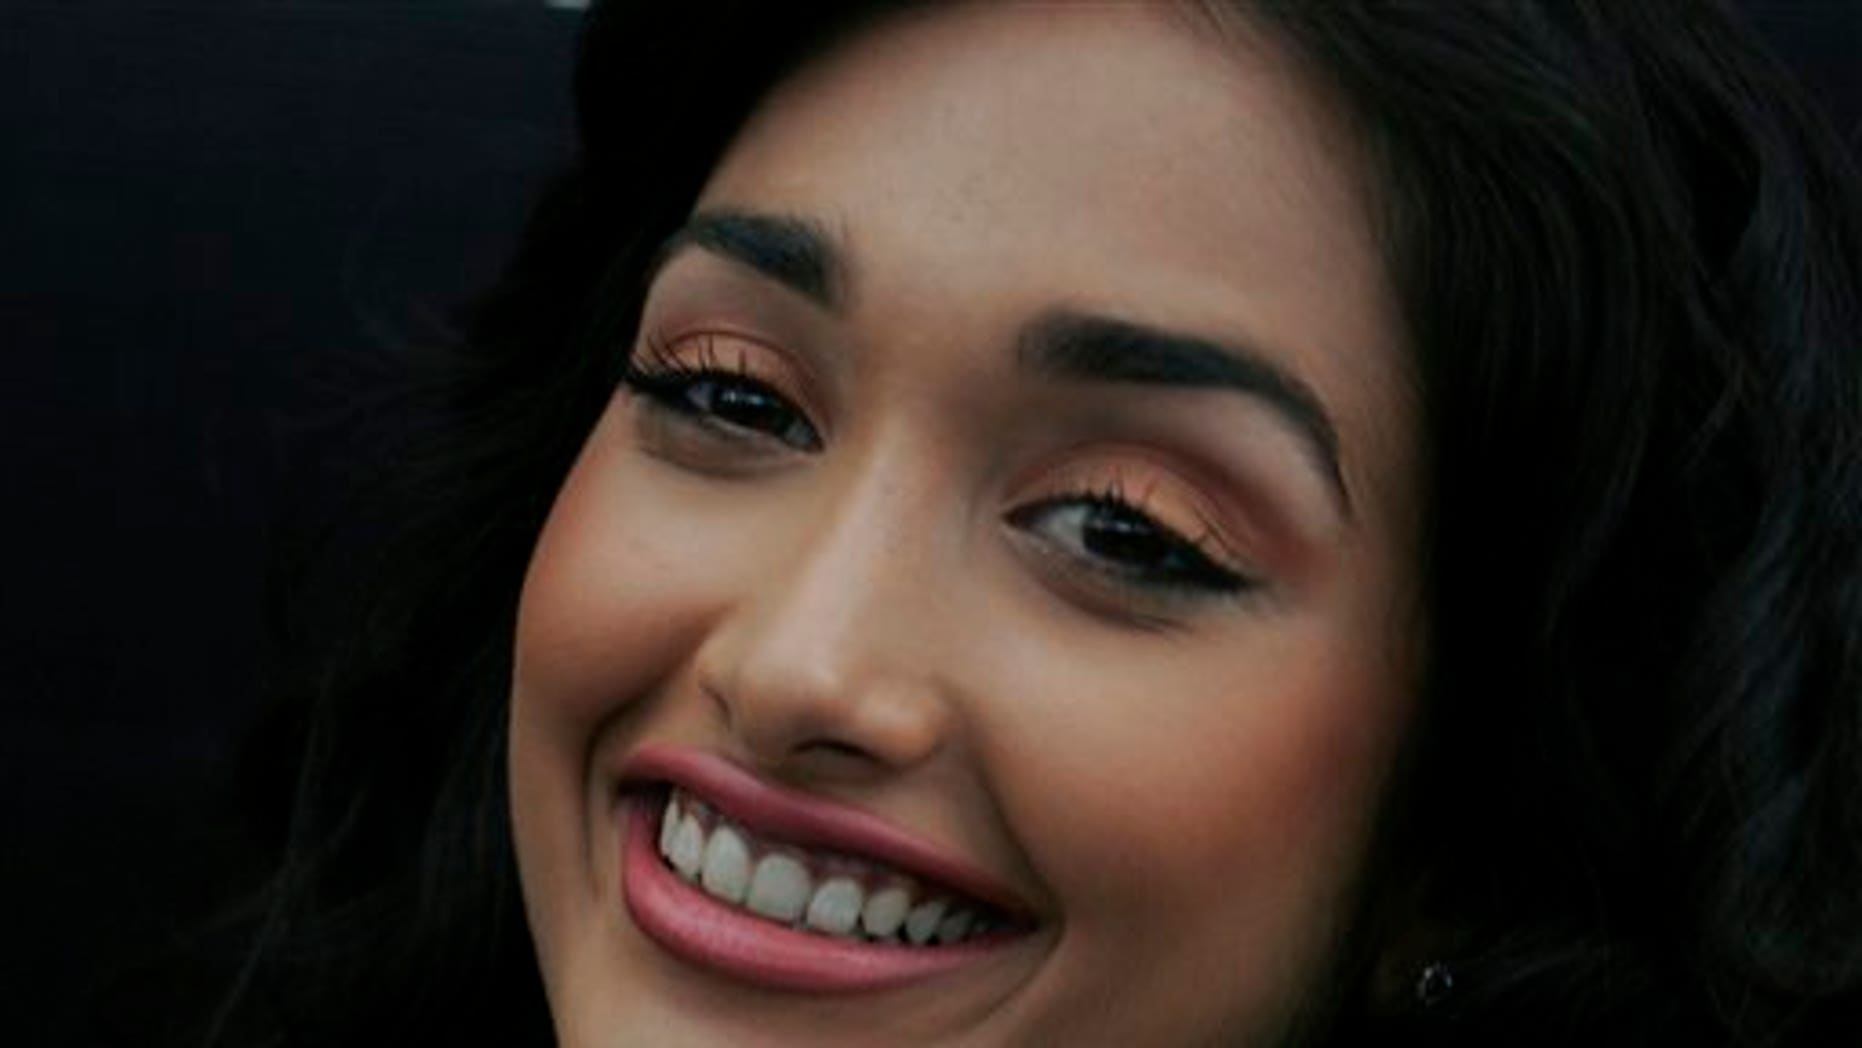 """In this Dec. 19, 2008 file photo, Bollywood actress Jiah Khan smiles during a promotional event of her forthcoming Hindi movie """"Ghajini"""" in Bangalore, India. Police said that Khan was found dead at her home in Mumbai late Monday, June 3, 2013."""